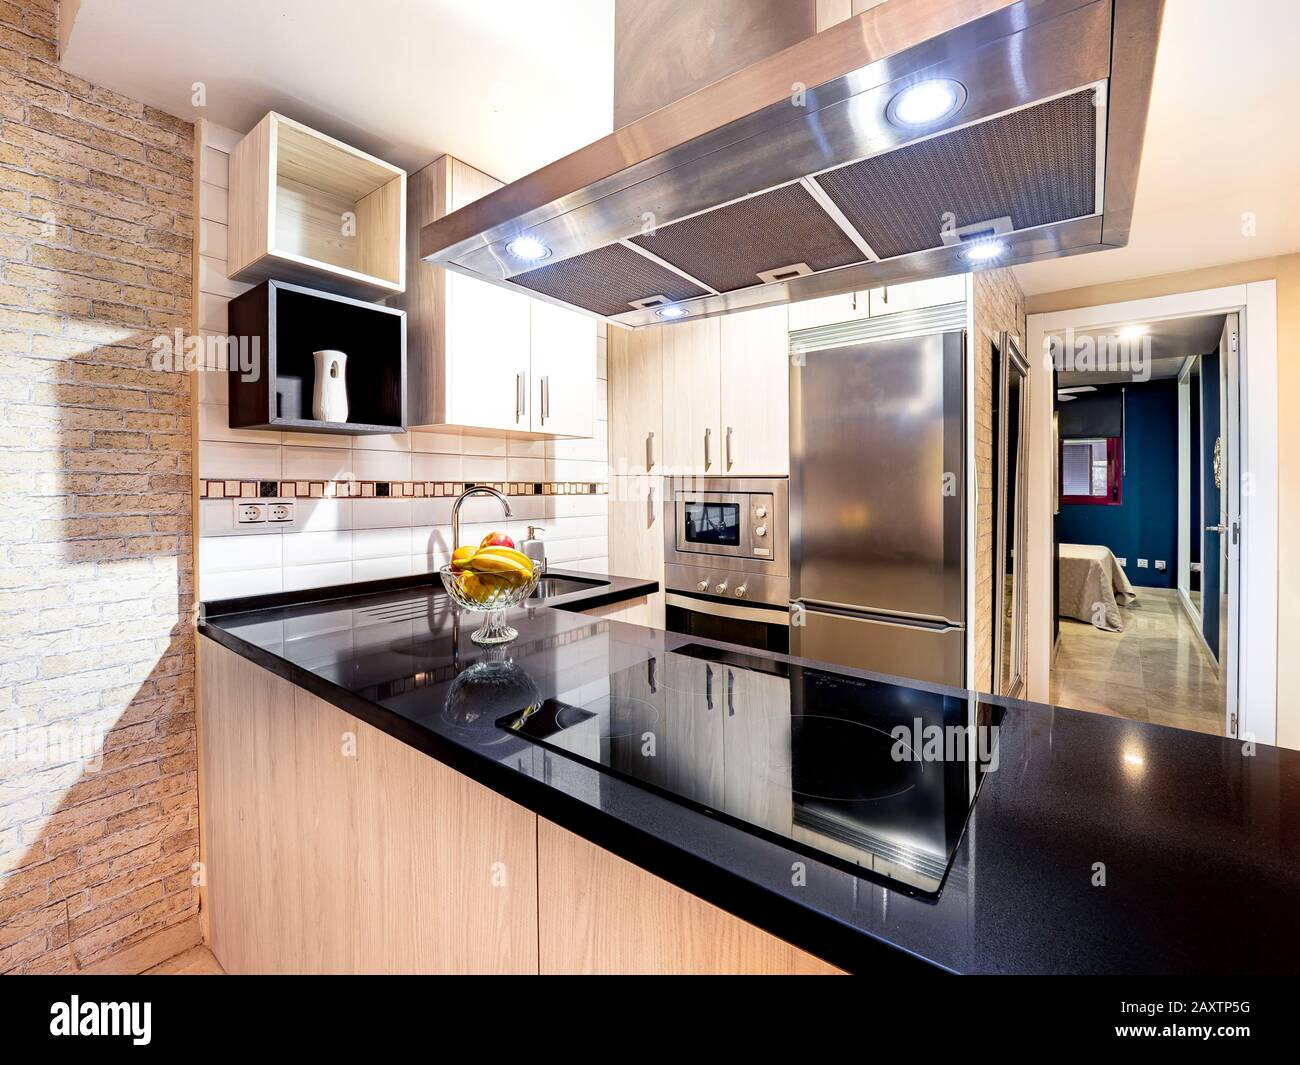 New Stylish Bright Kitchen With Wooden Cabinets Next To The Living Room Spacious Modern Fully Equipped Appliance Interior With Stone Desk Ceramic St Stock Photo Alamy